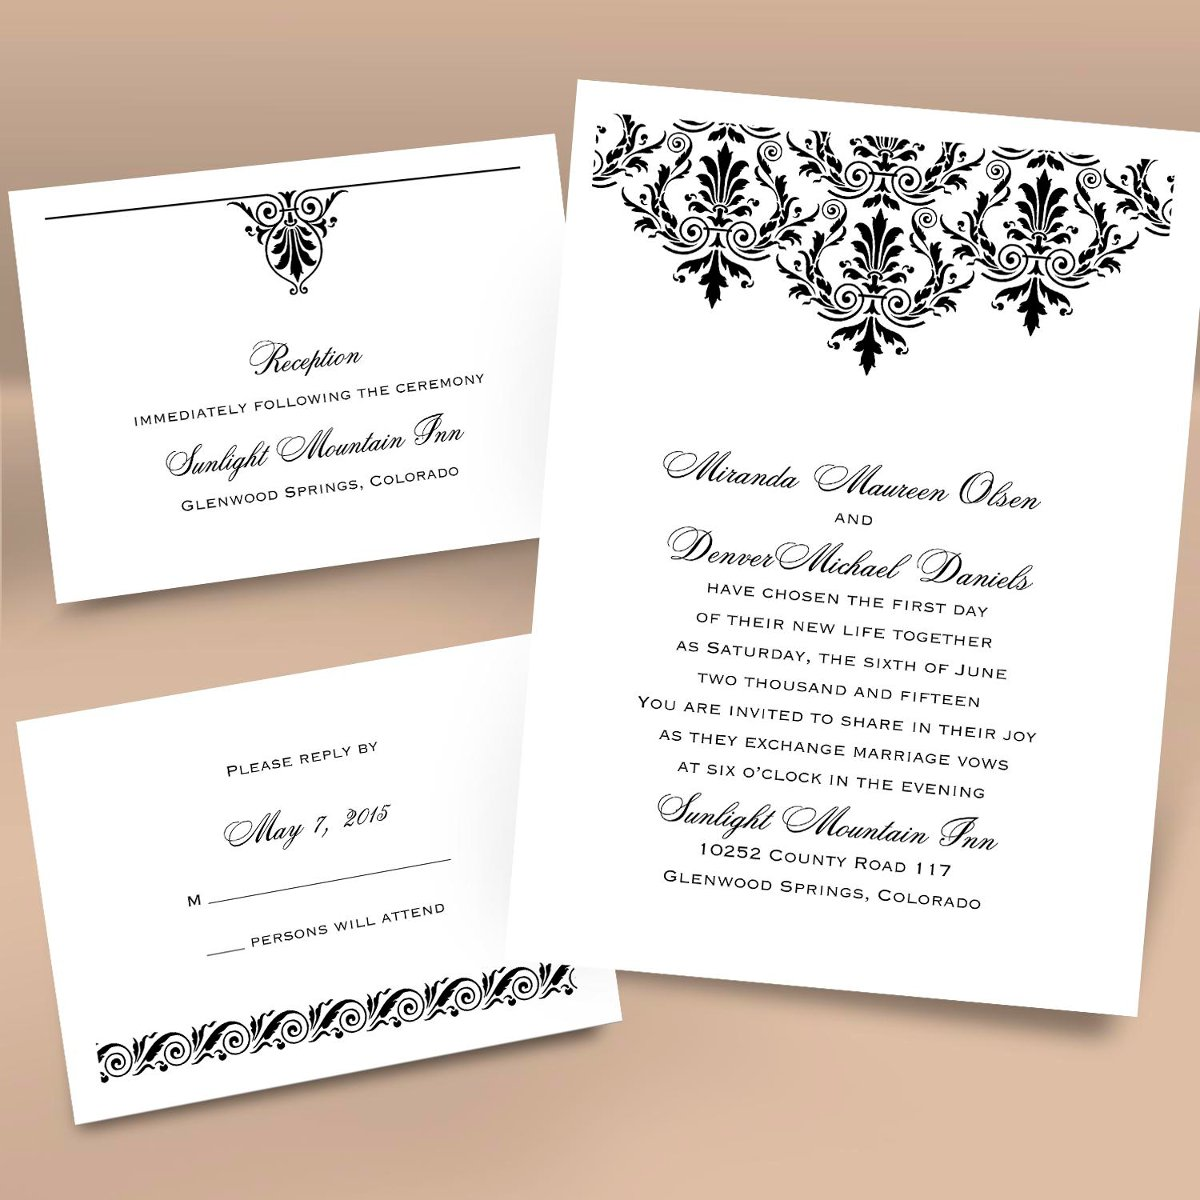 Wording For Wedding Registry Card : ... cards (respond card and reception card) on one convenient sheet. They